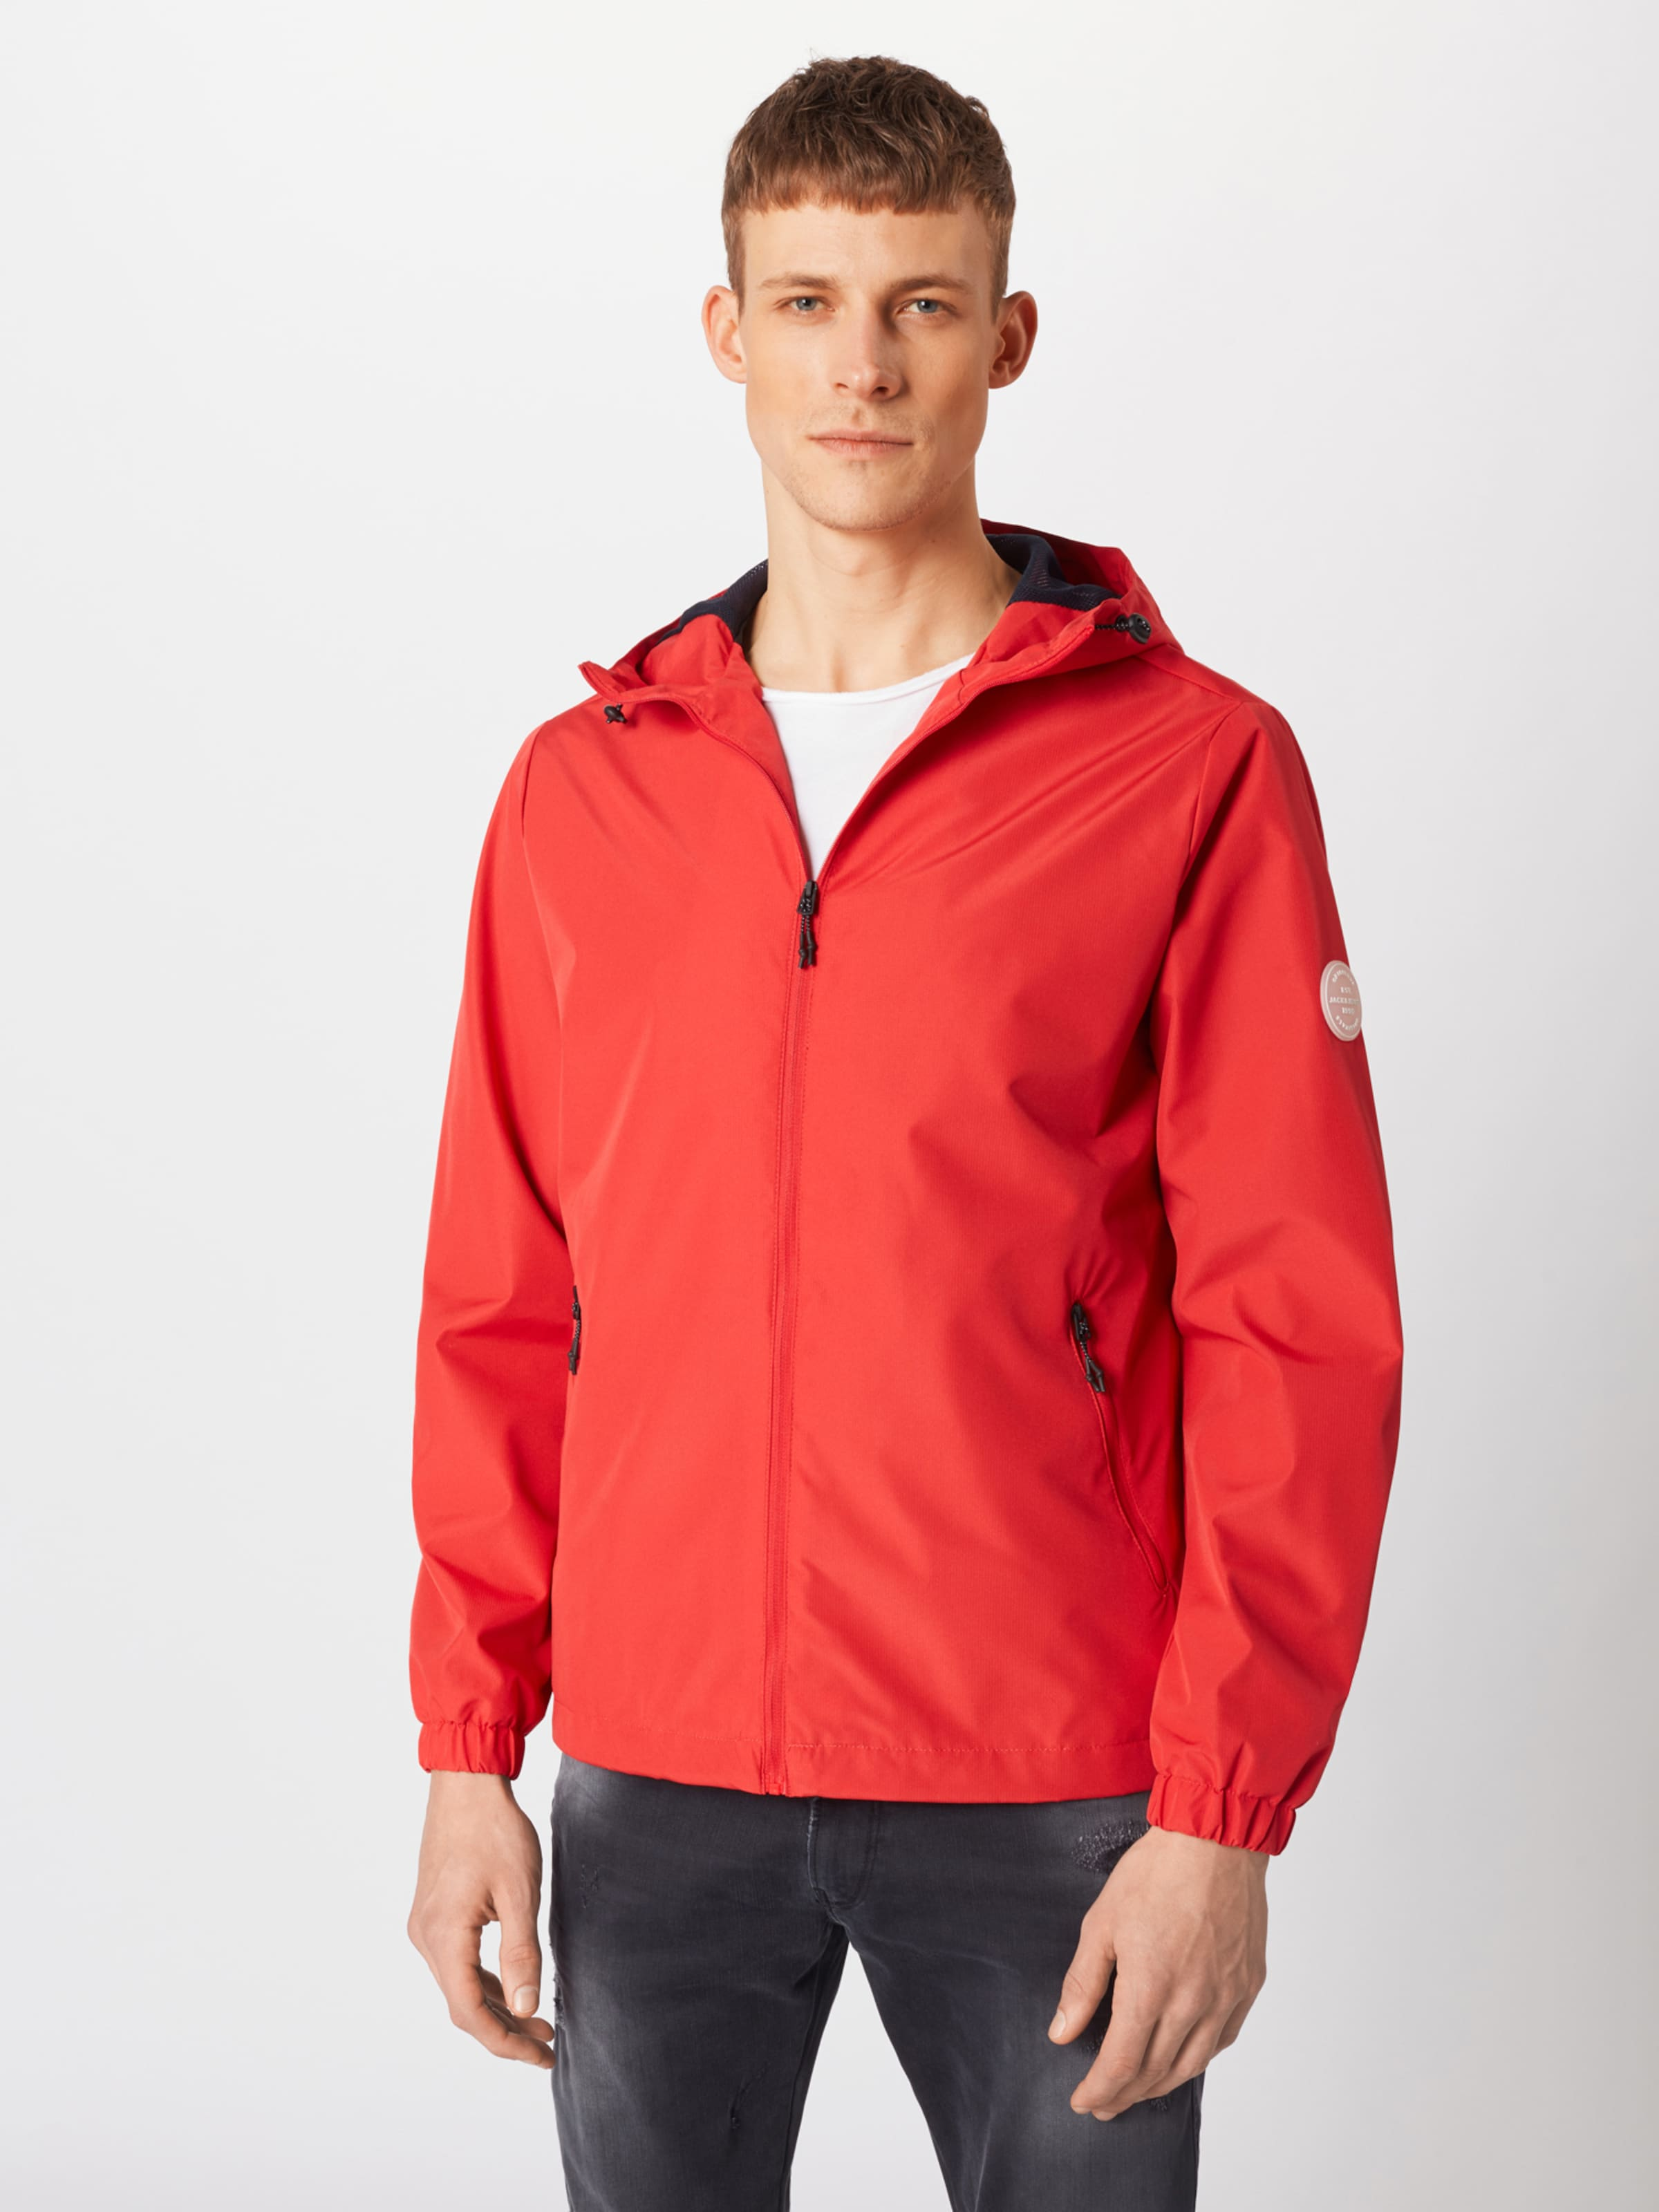 Mi 'jorglave En saison Jones Jacket Jackamp; Light Track Rouge Veste Sts' b76fyg